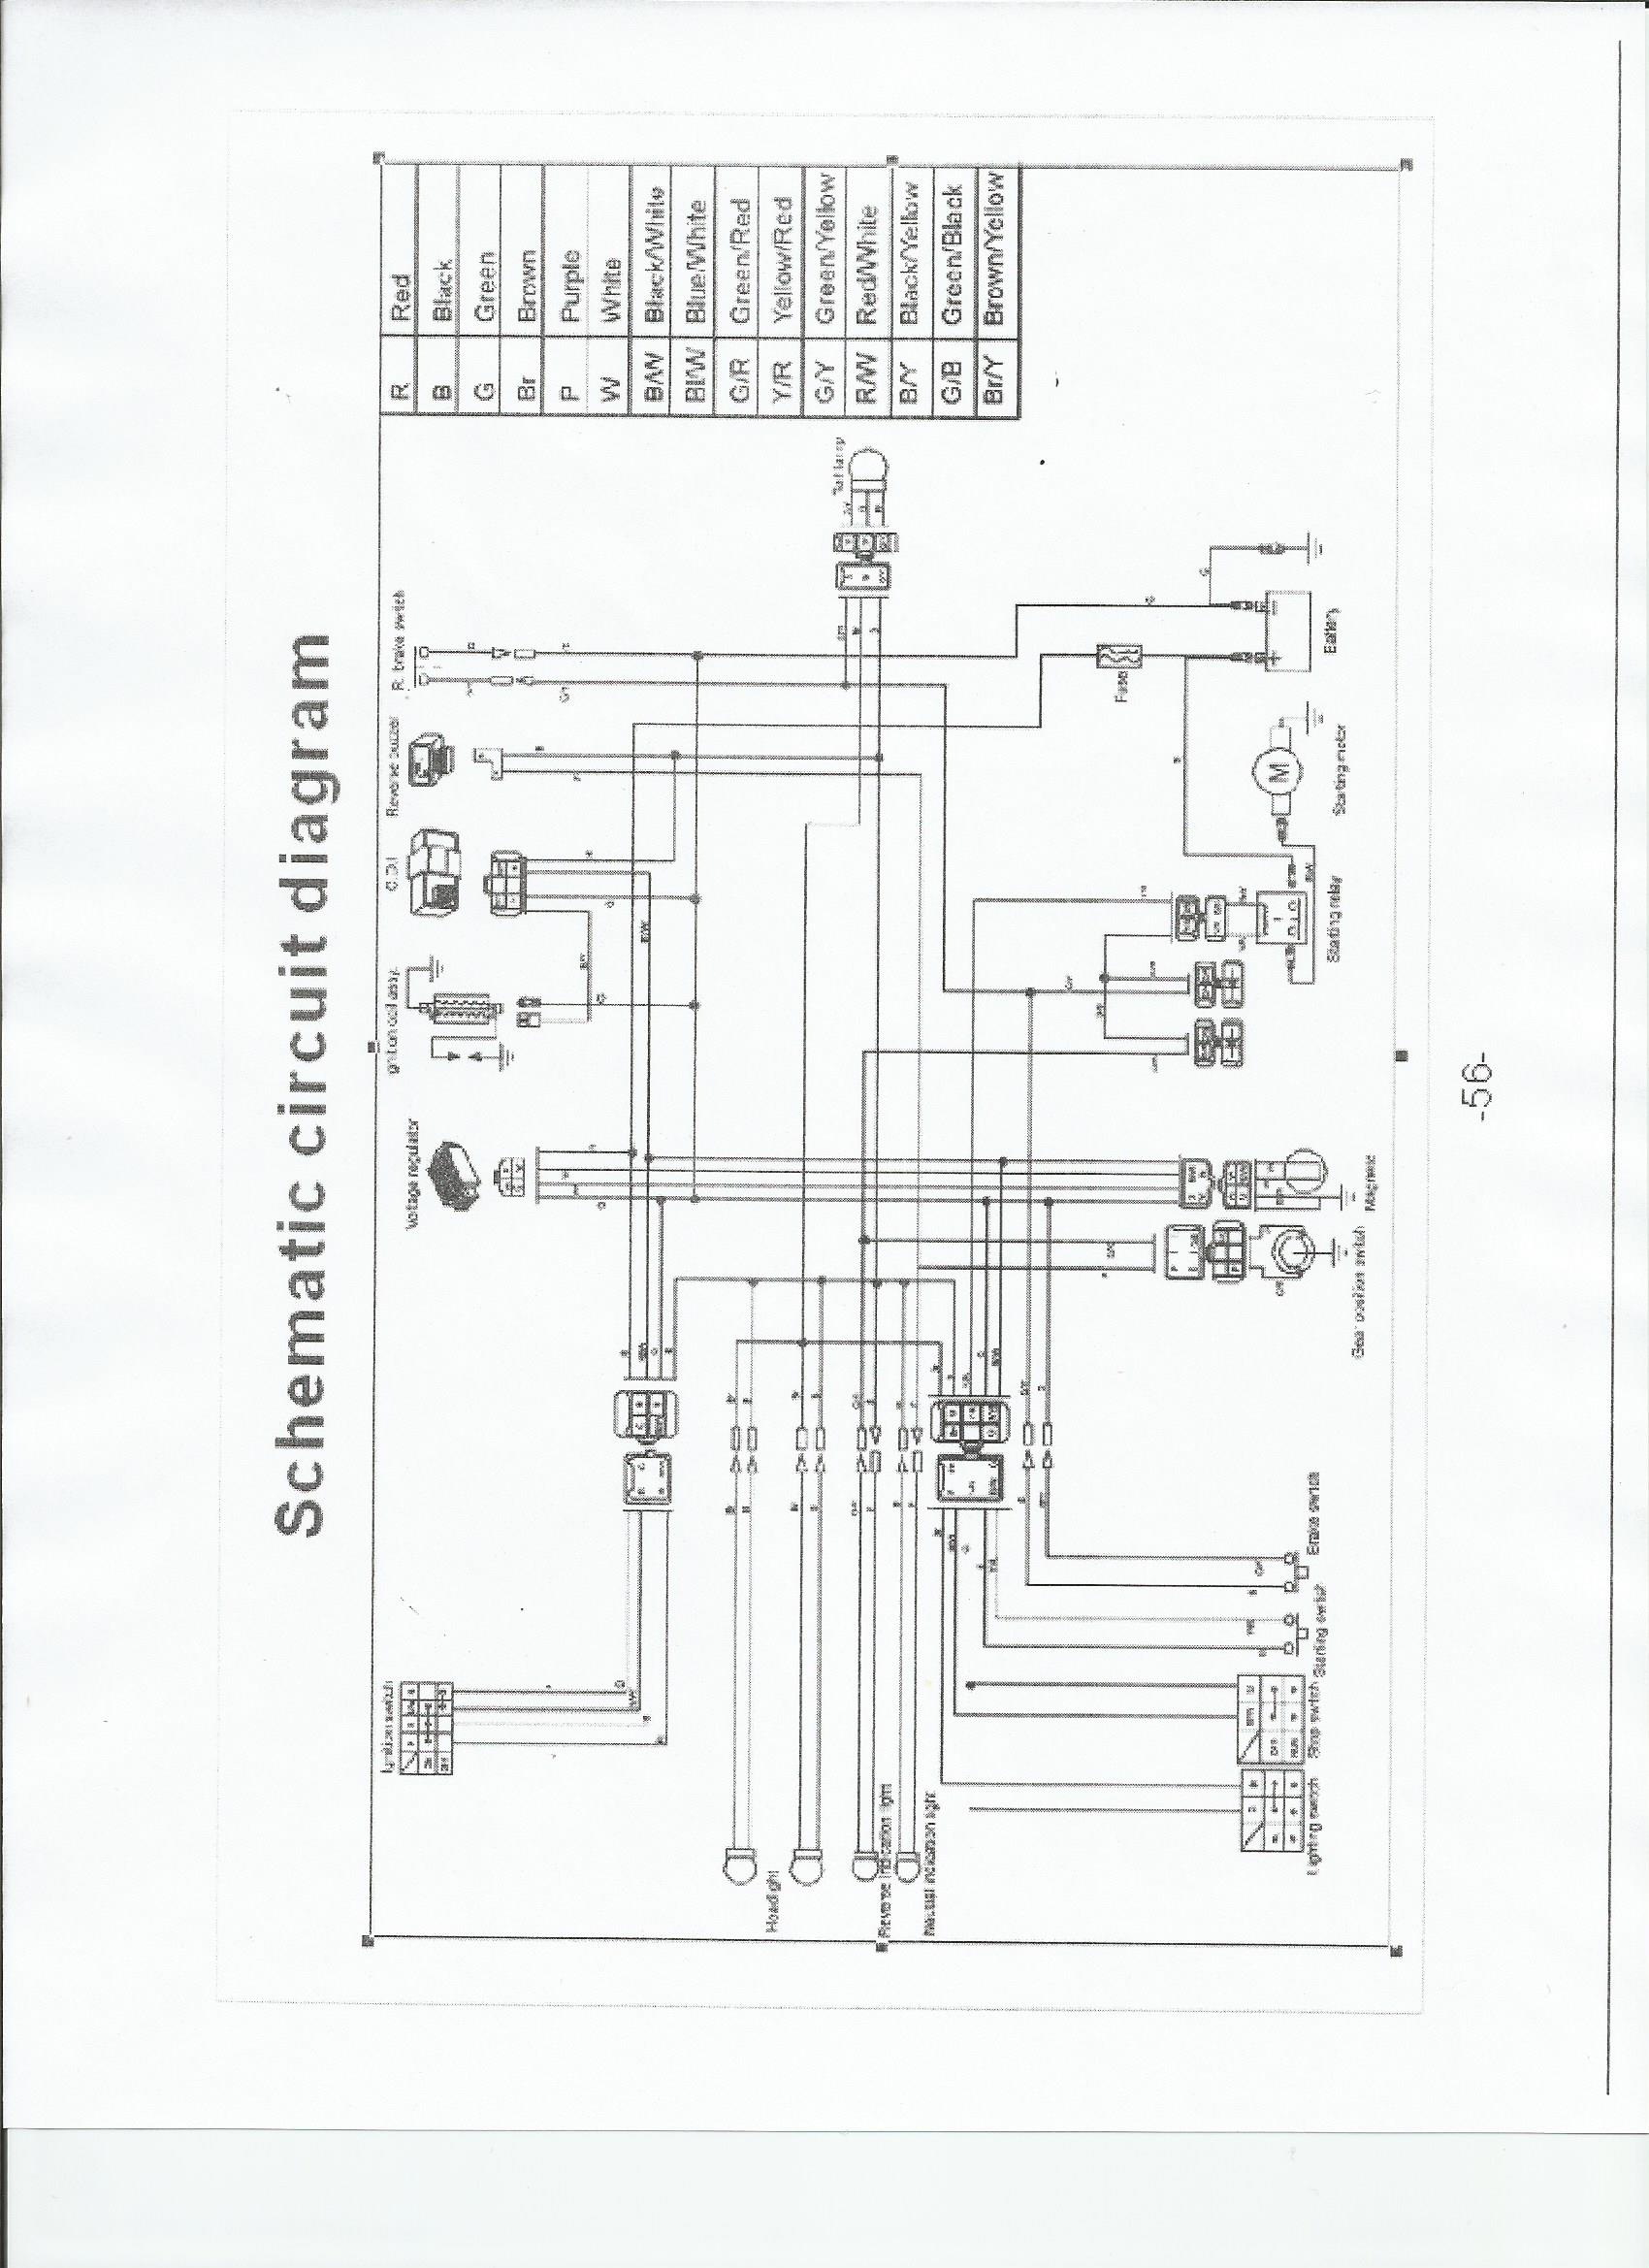 Atv Wiring Diagram Third Level Chinese Cdi For Taotao Mini And Youth Schematic Familygokarts Support